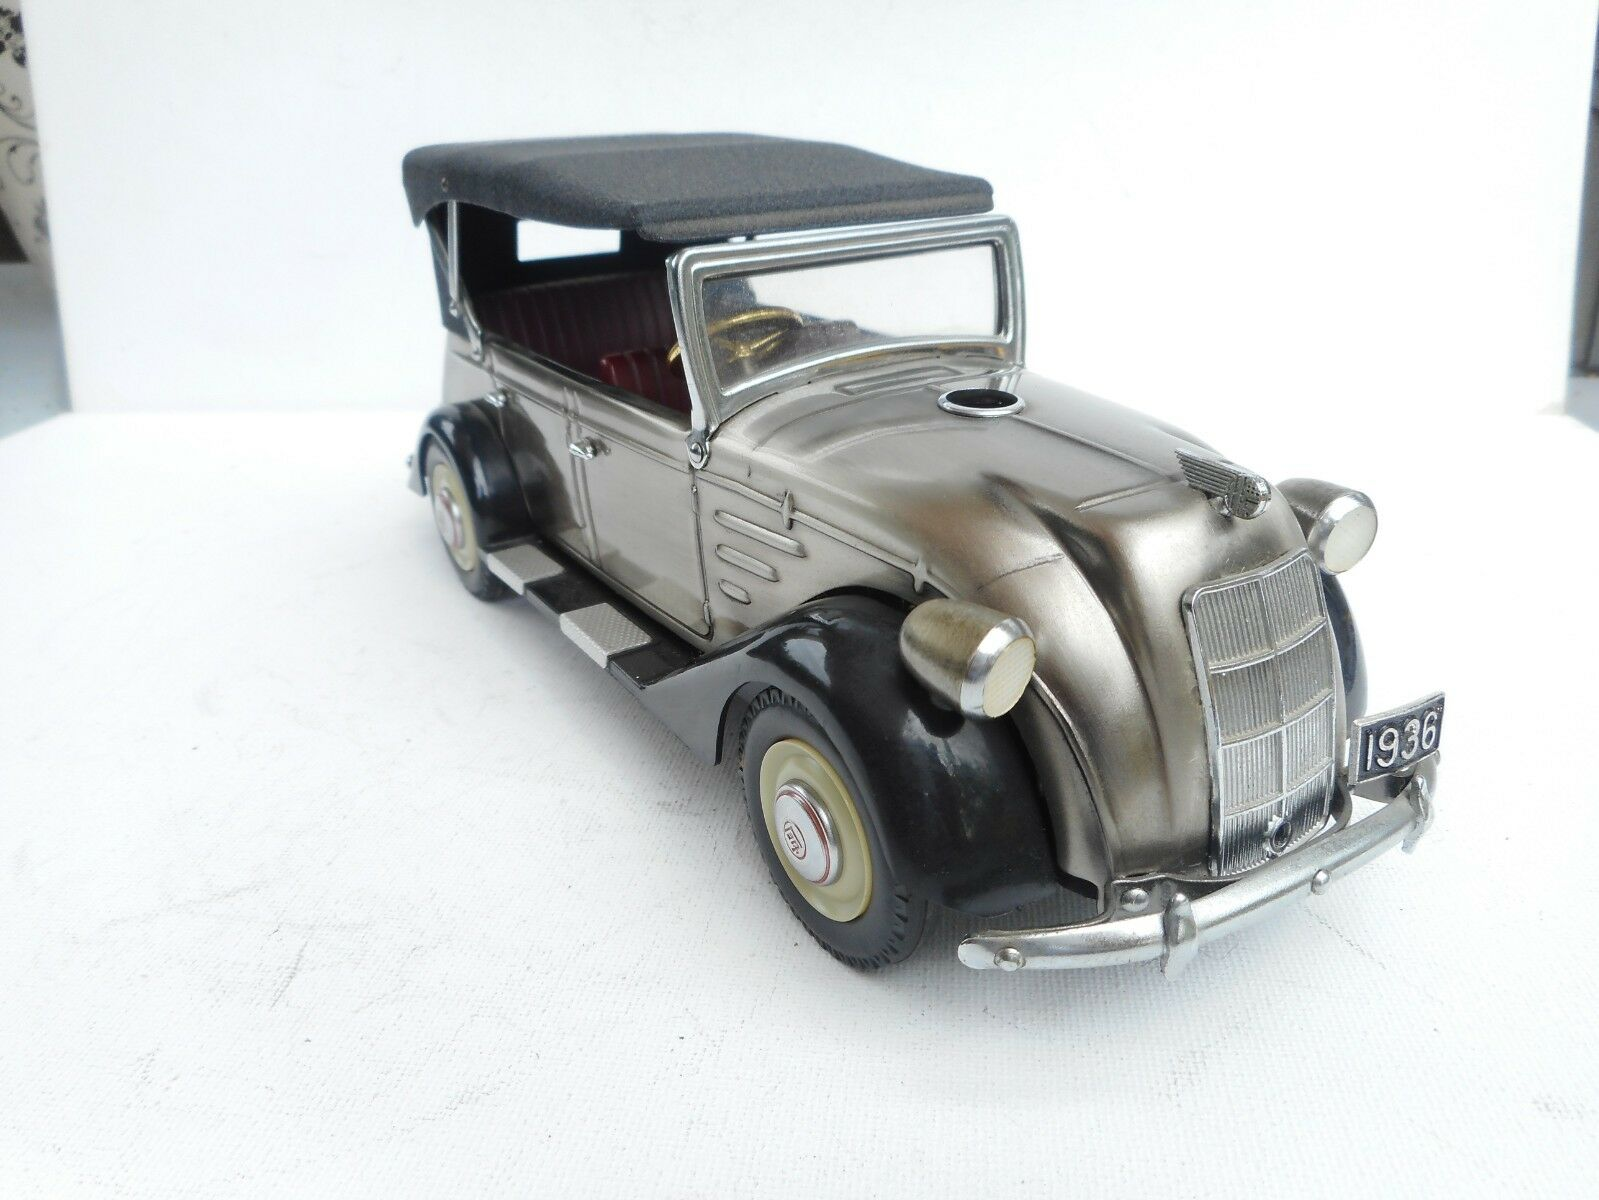 1 24 ABOUT VINTAGE TOYOTA AB PEATON GAS LICHTER DIECAST GOOD WORKING RARE